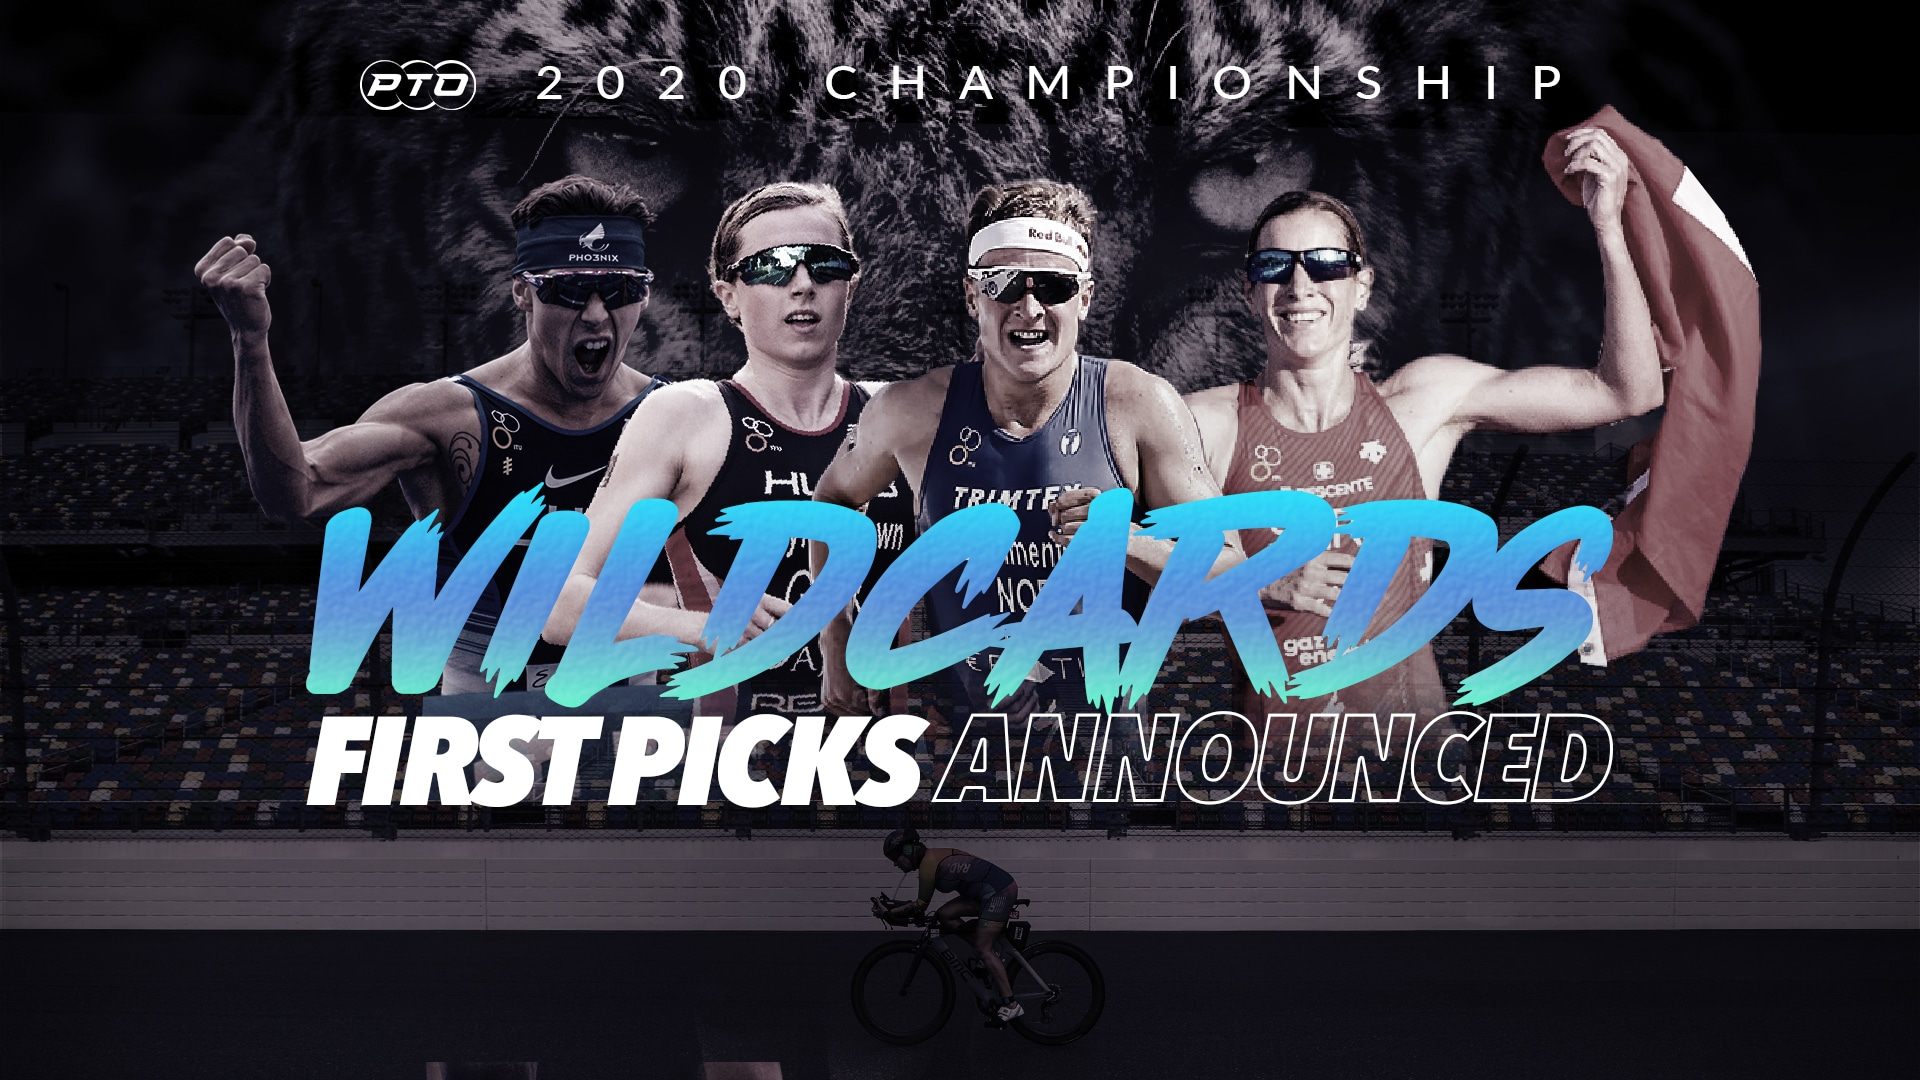 PTO SPICES UP DAYTONA MIX WITH WILDCARD CHOICES